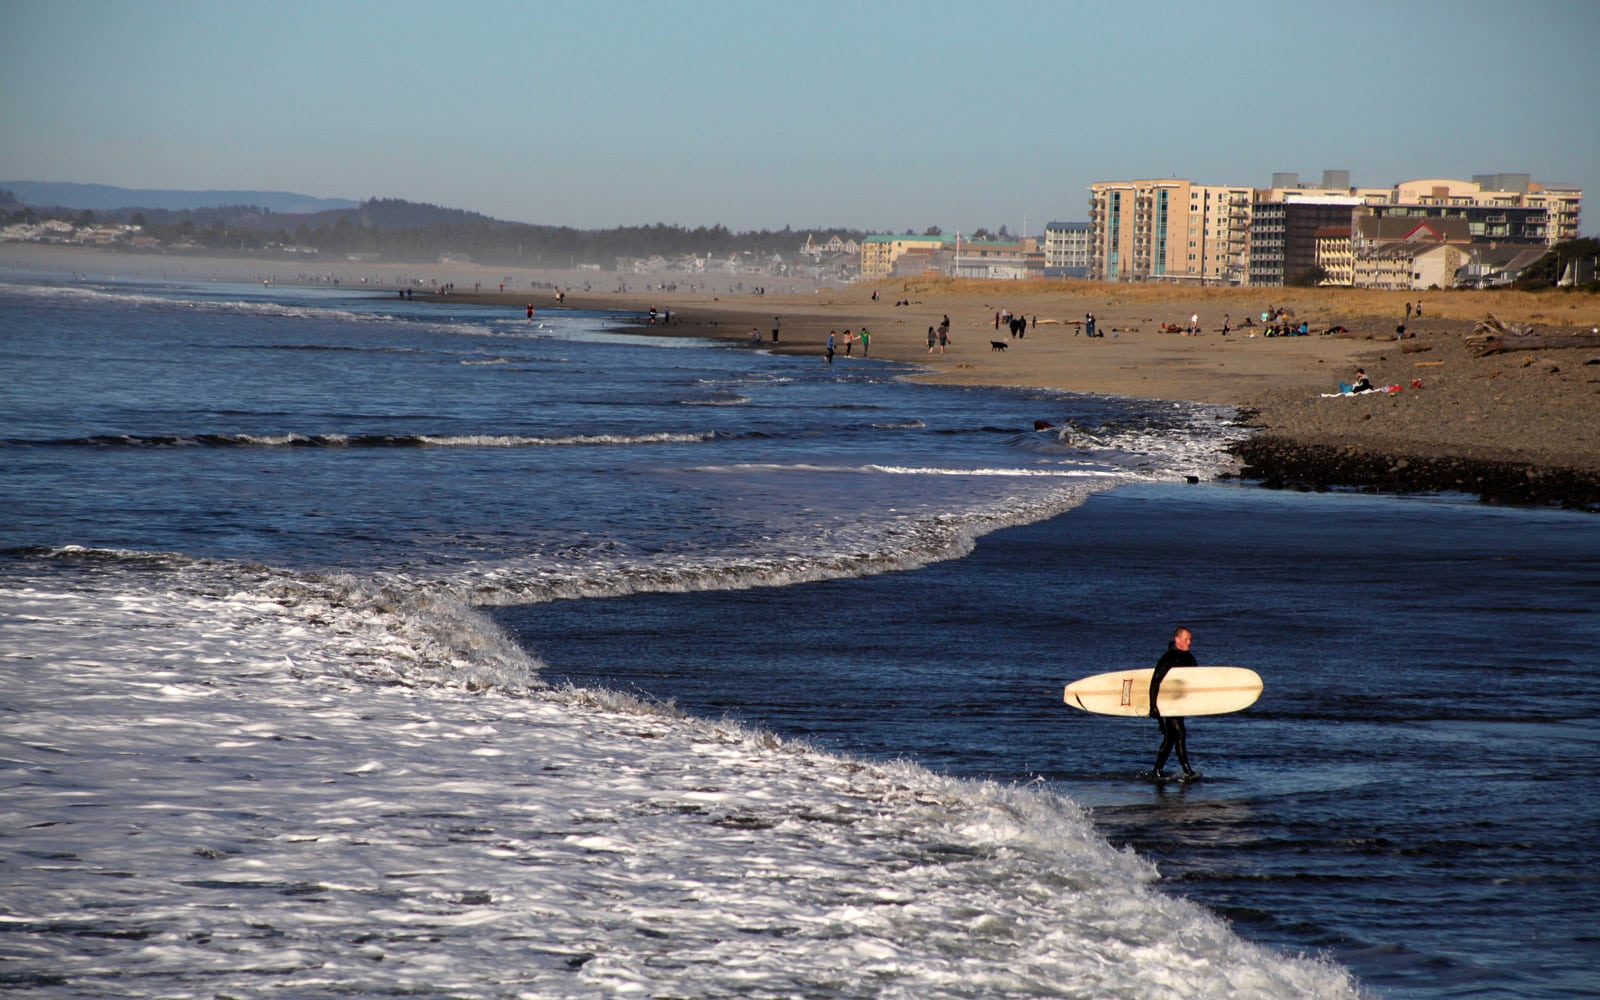 Surfing In Oregon Yes The North Coast Has Some Of Best Breaks Pacific Northwest And Ocean Is A Bit Nippy But That S What Wetsuits